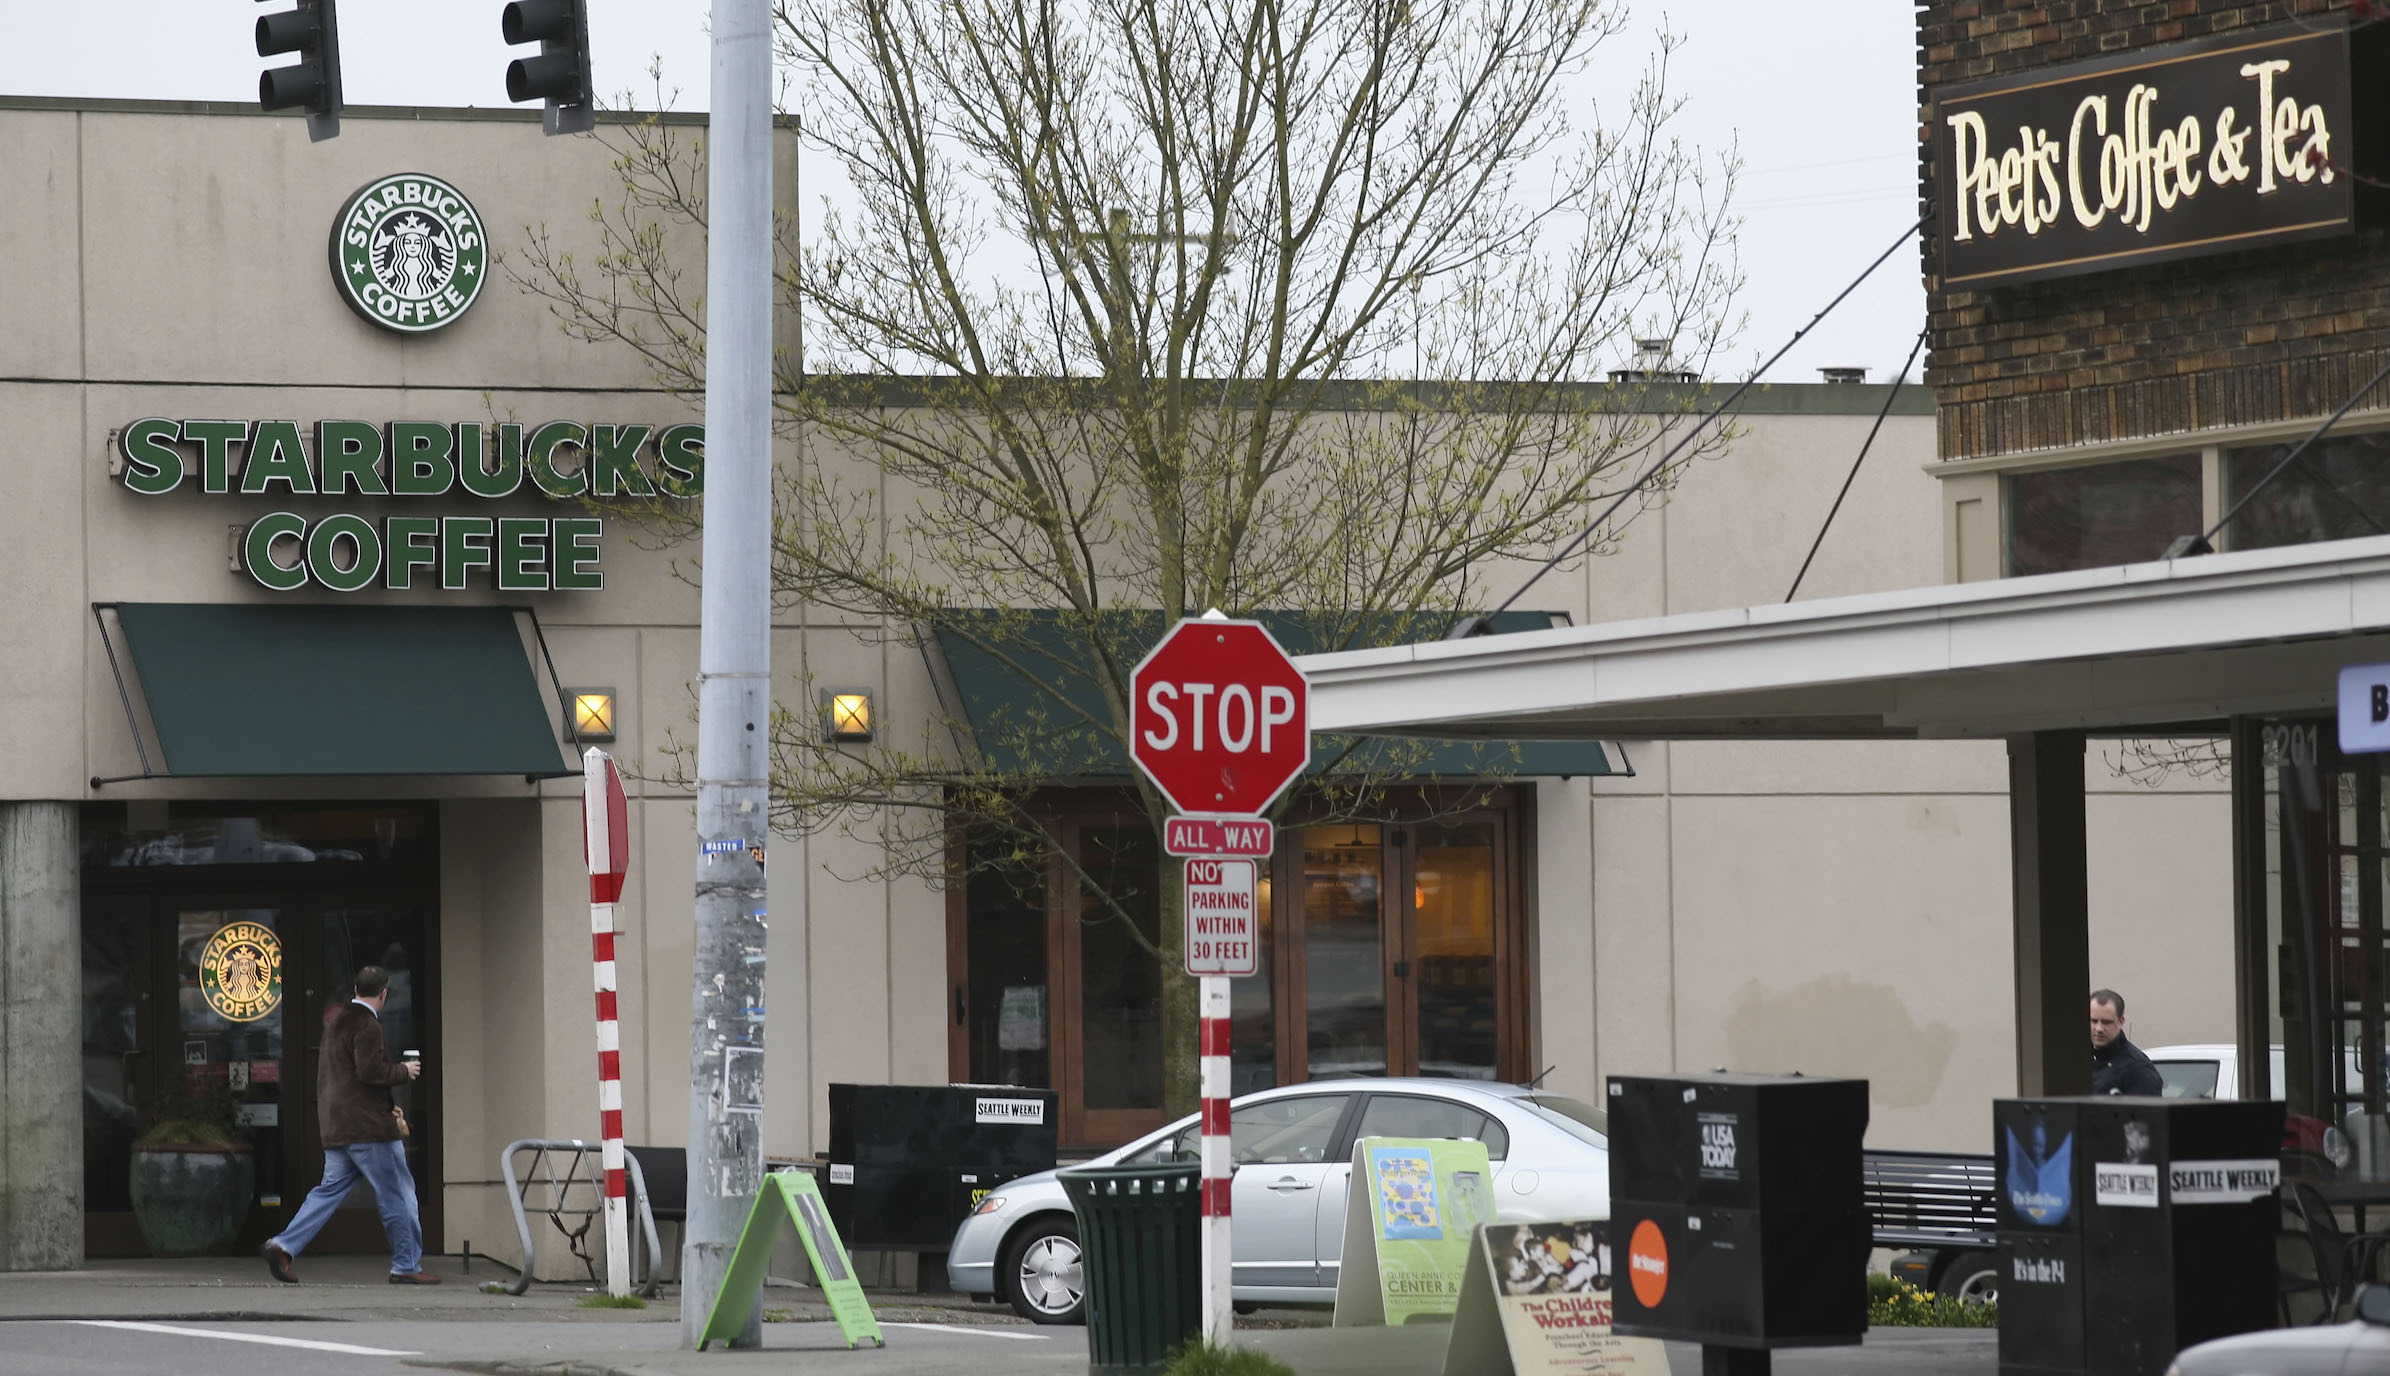 A Starbucks store is seen a Peets Coffee and Tea store (R) in Seattle, Washington March 19, 2008. REUTERS/Marcus R. Donner (UNITED STATES) - RTR1YJ02